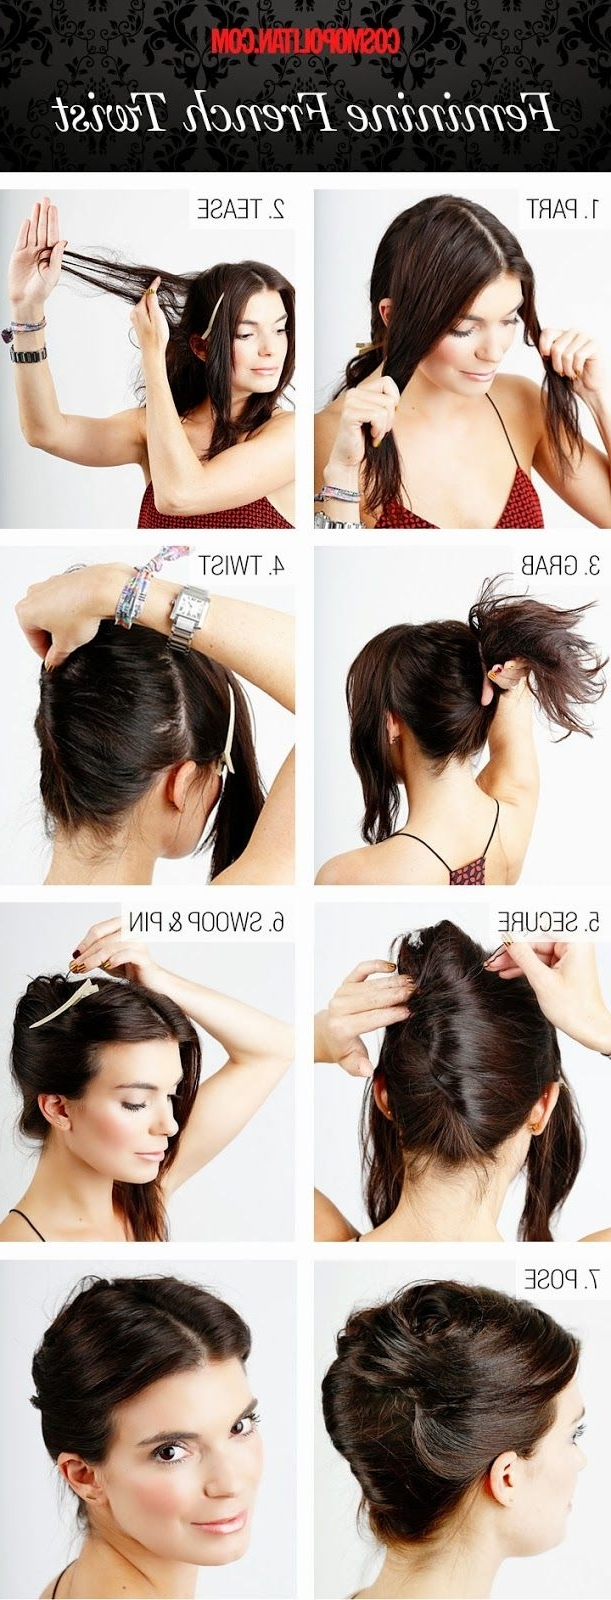 298 Best Peinados Images On Pinterest | Hairstyle Ideas, Hairstyle In Chic Updos For Long Hair (View 4 of 15)